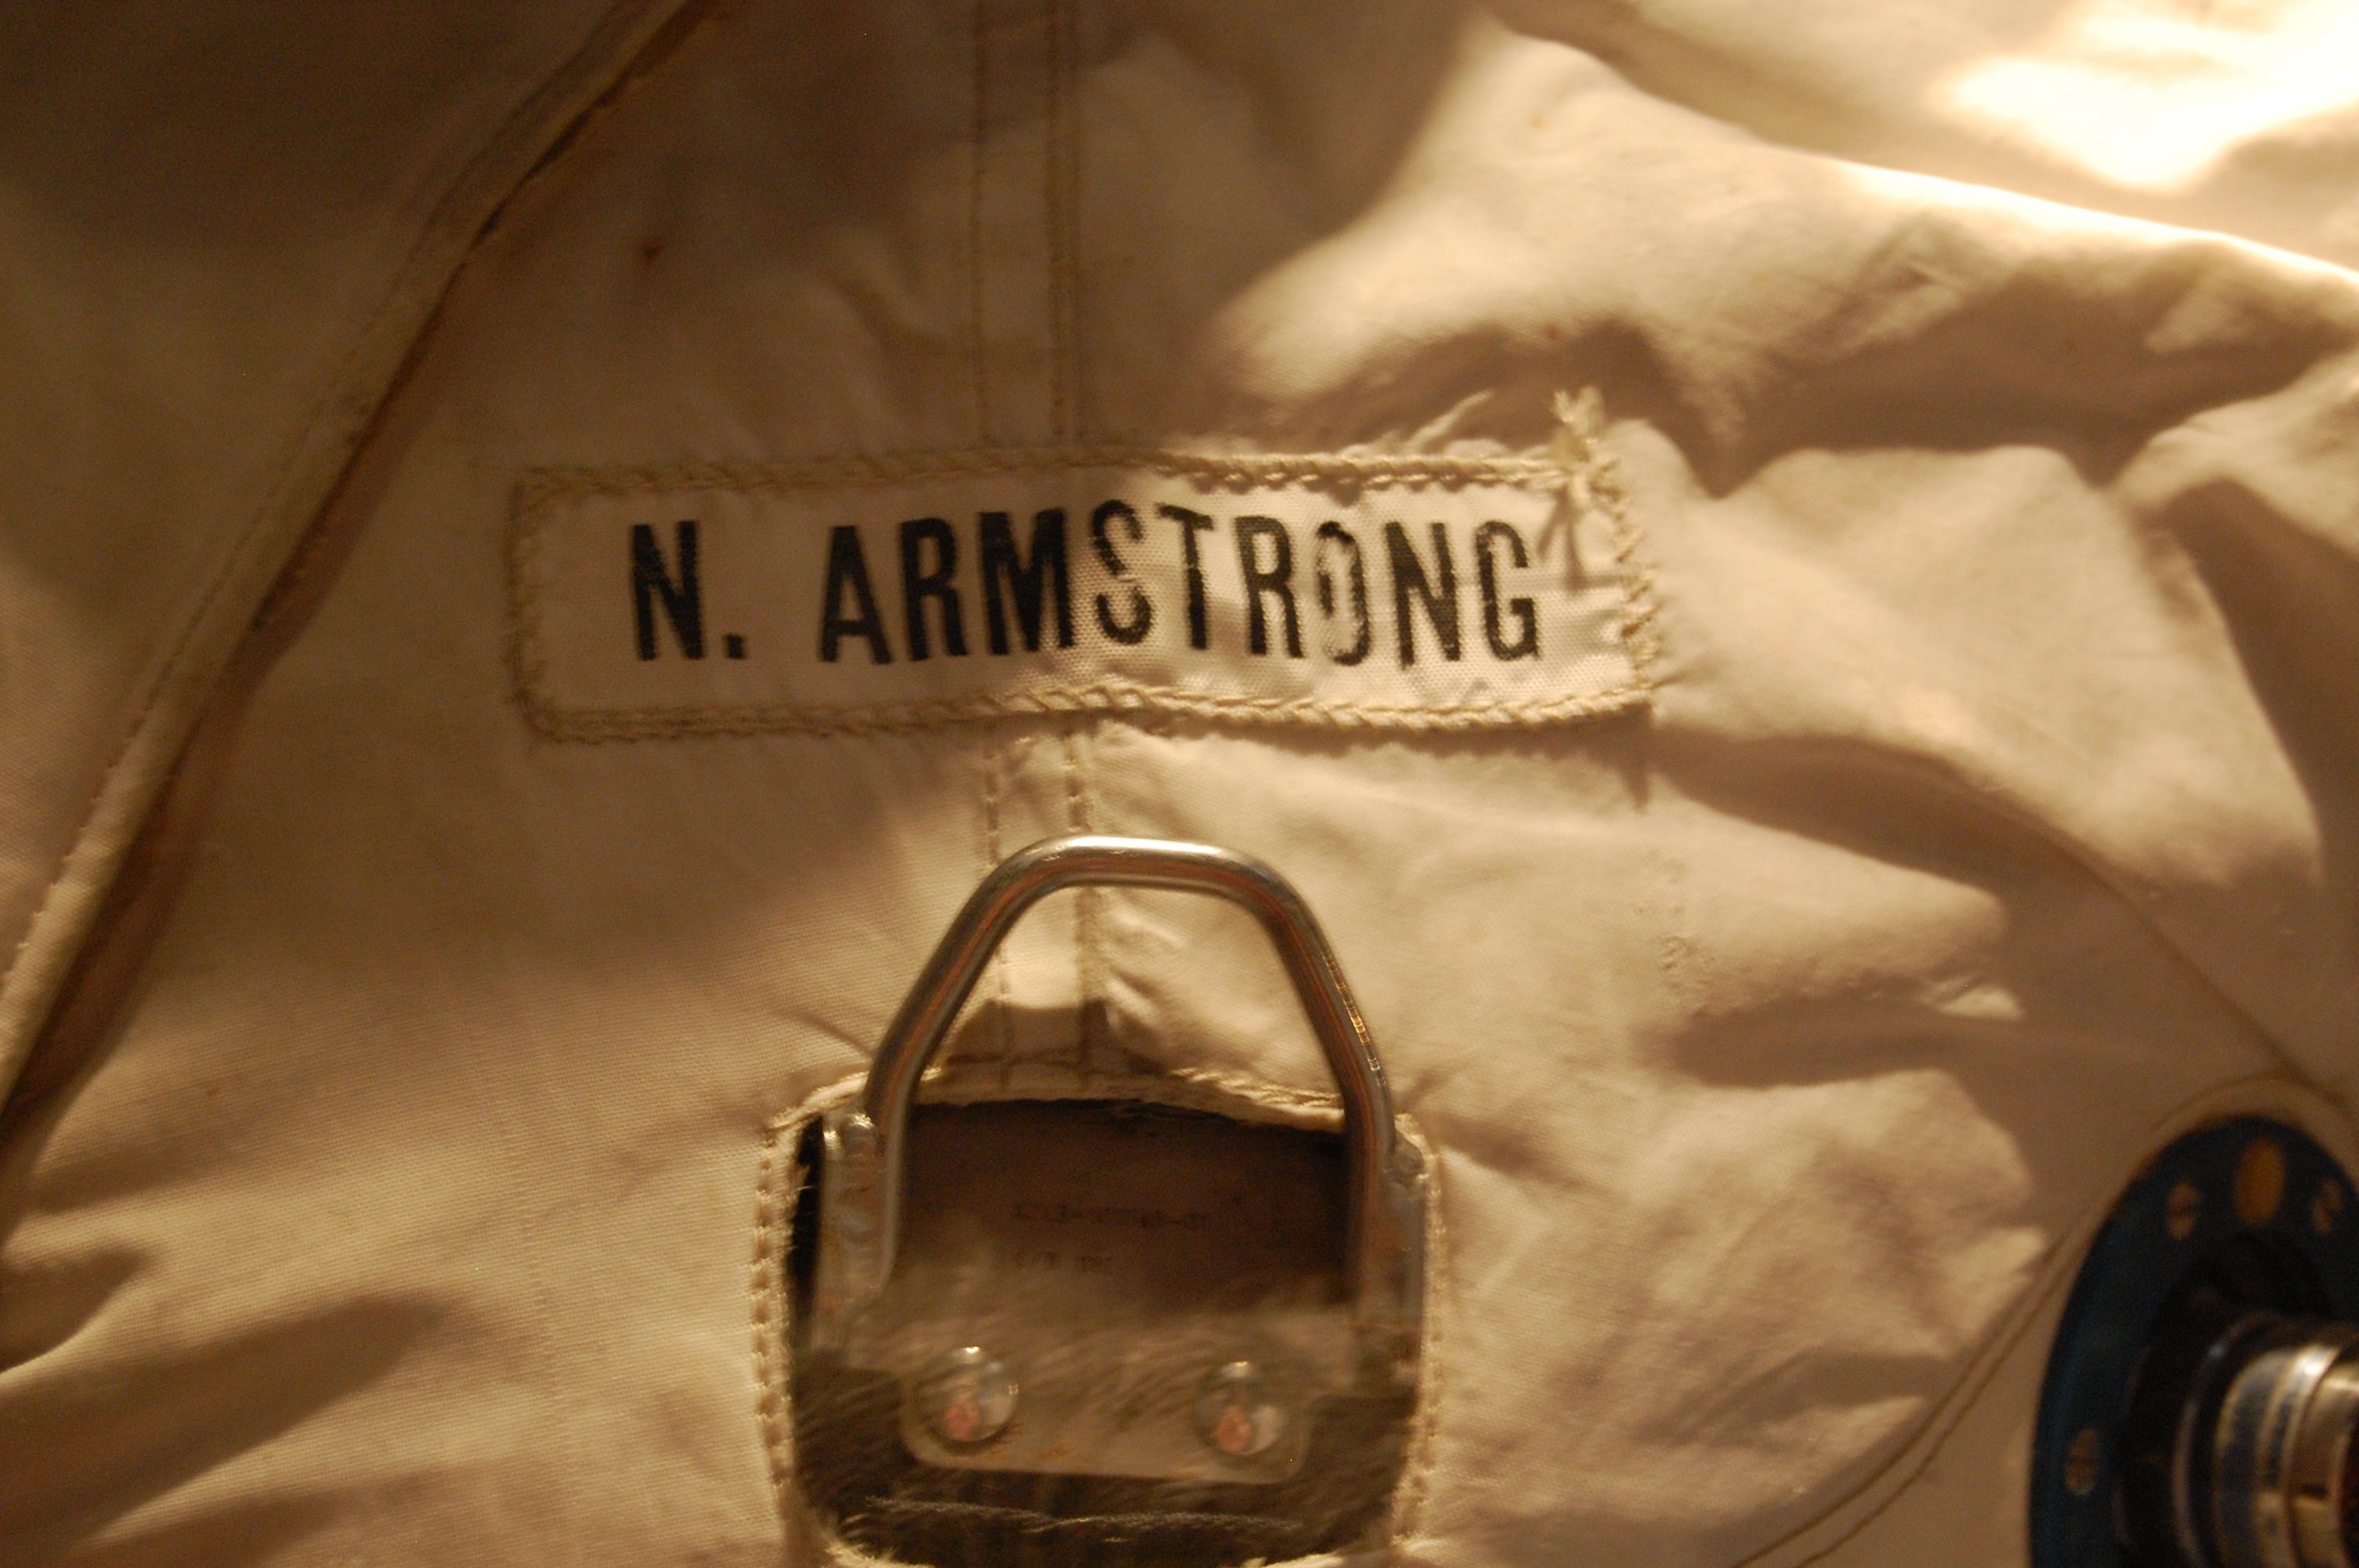 neil armstrong mission name patch - photo #28